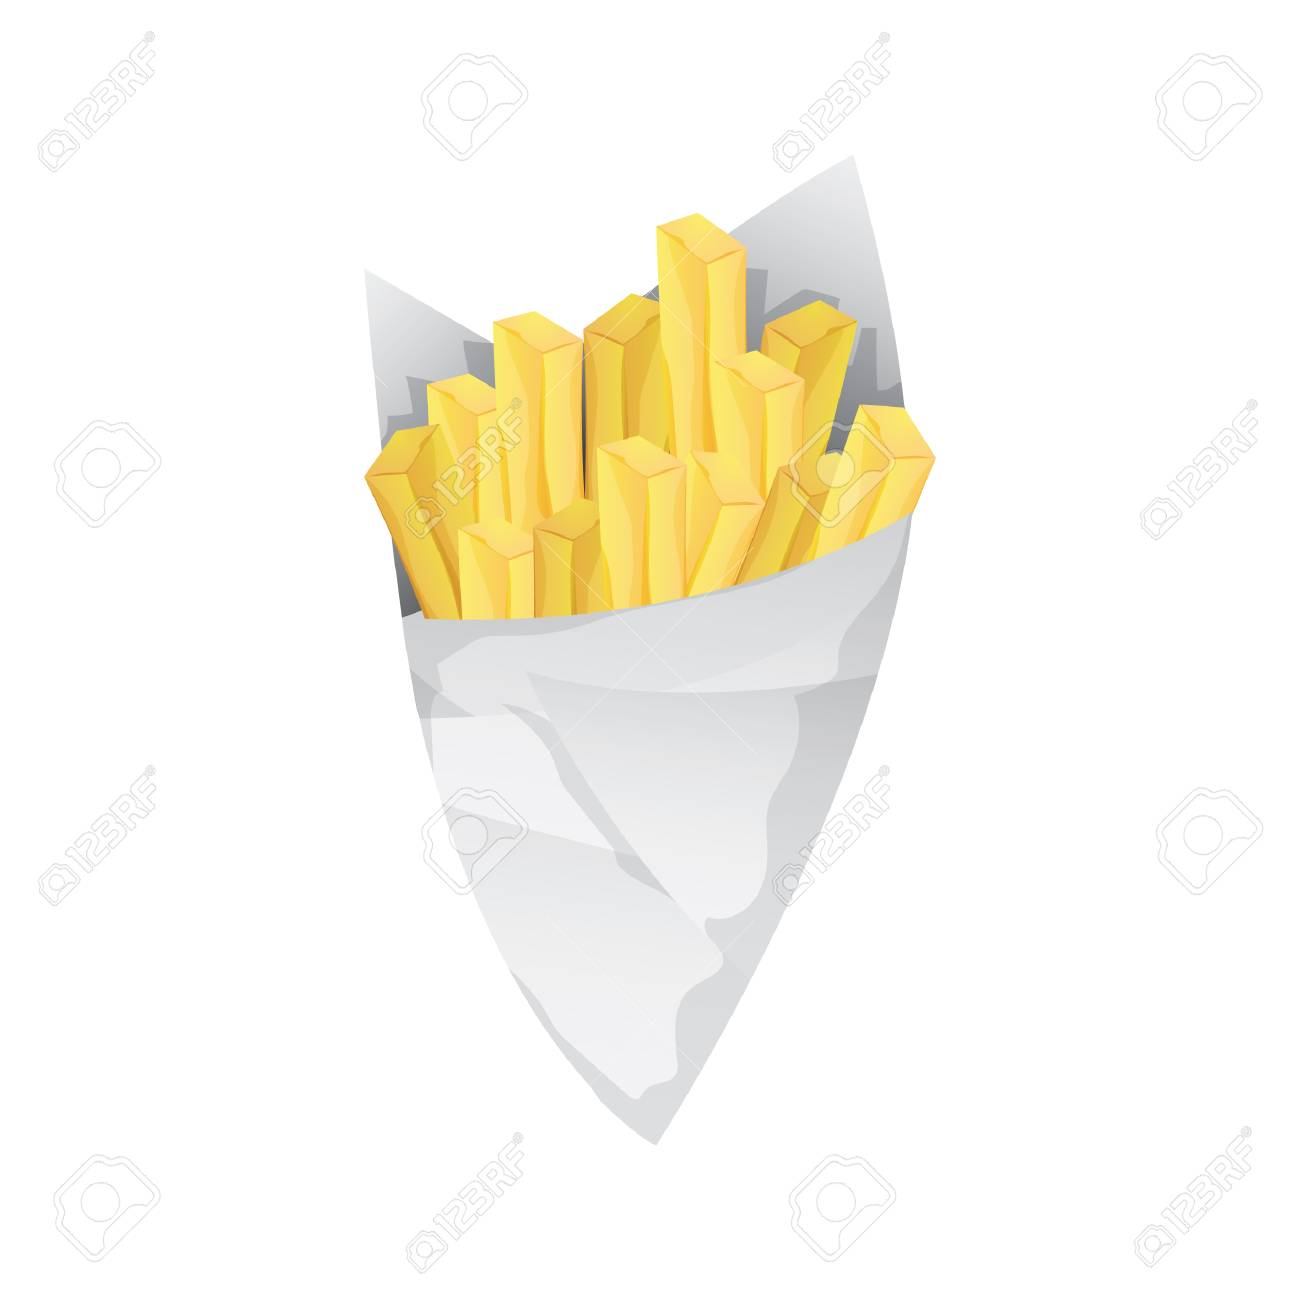 french fries in paper cones - 106673278